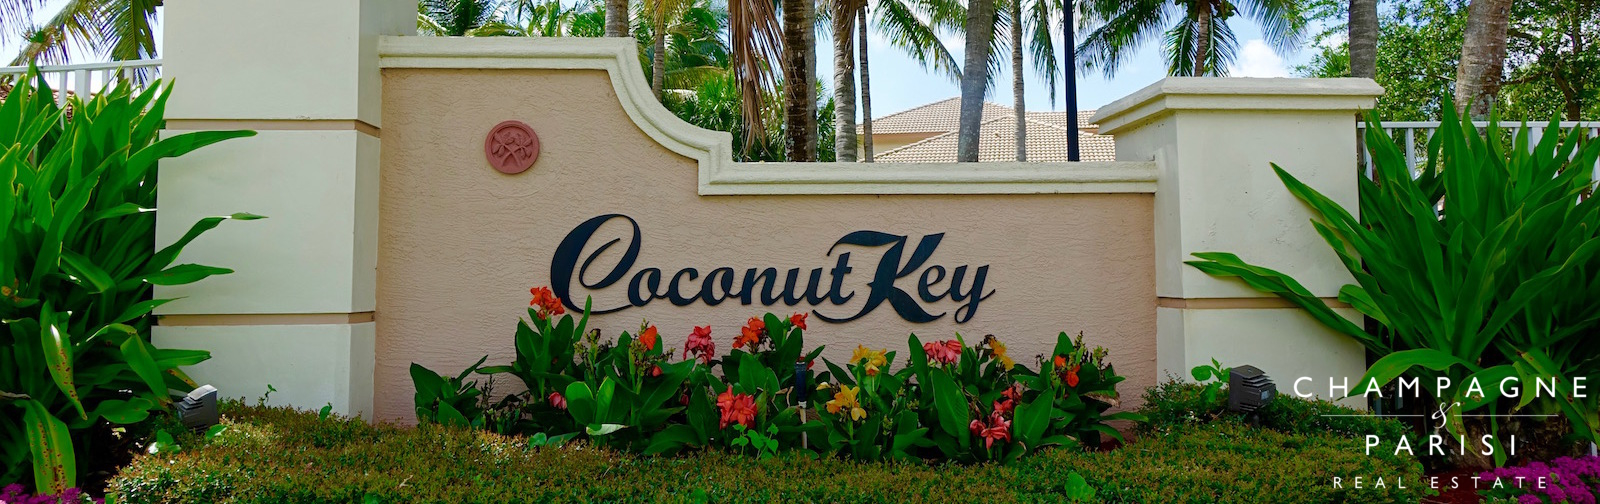 coconut key townhomes for sale